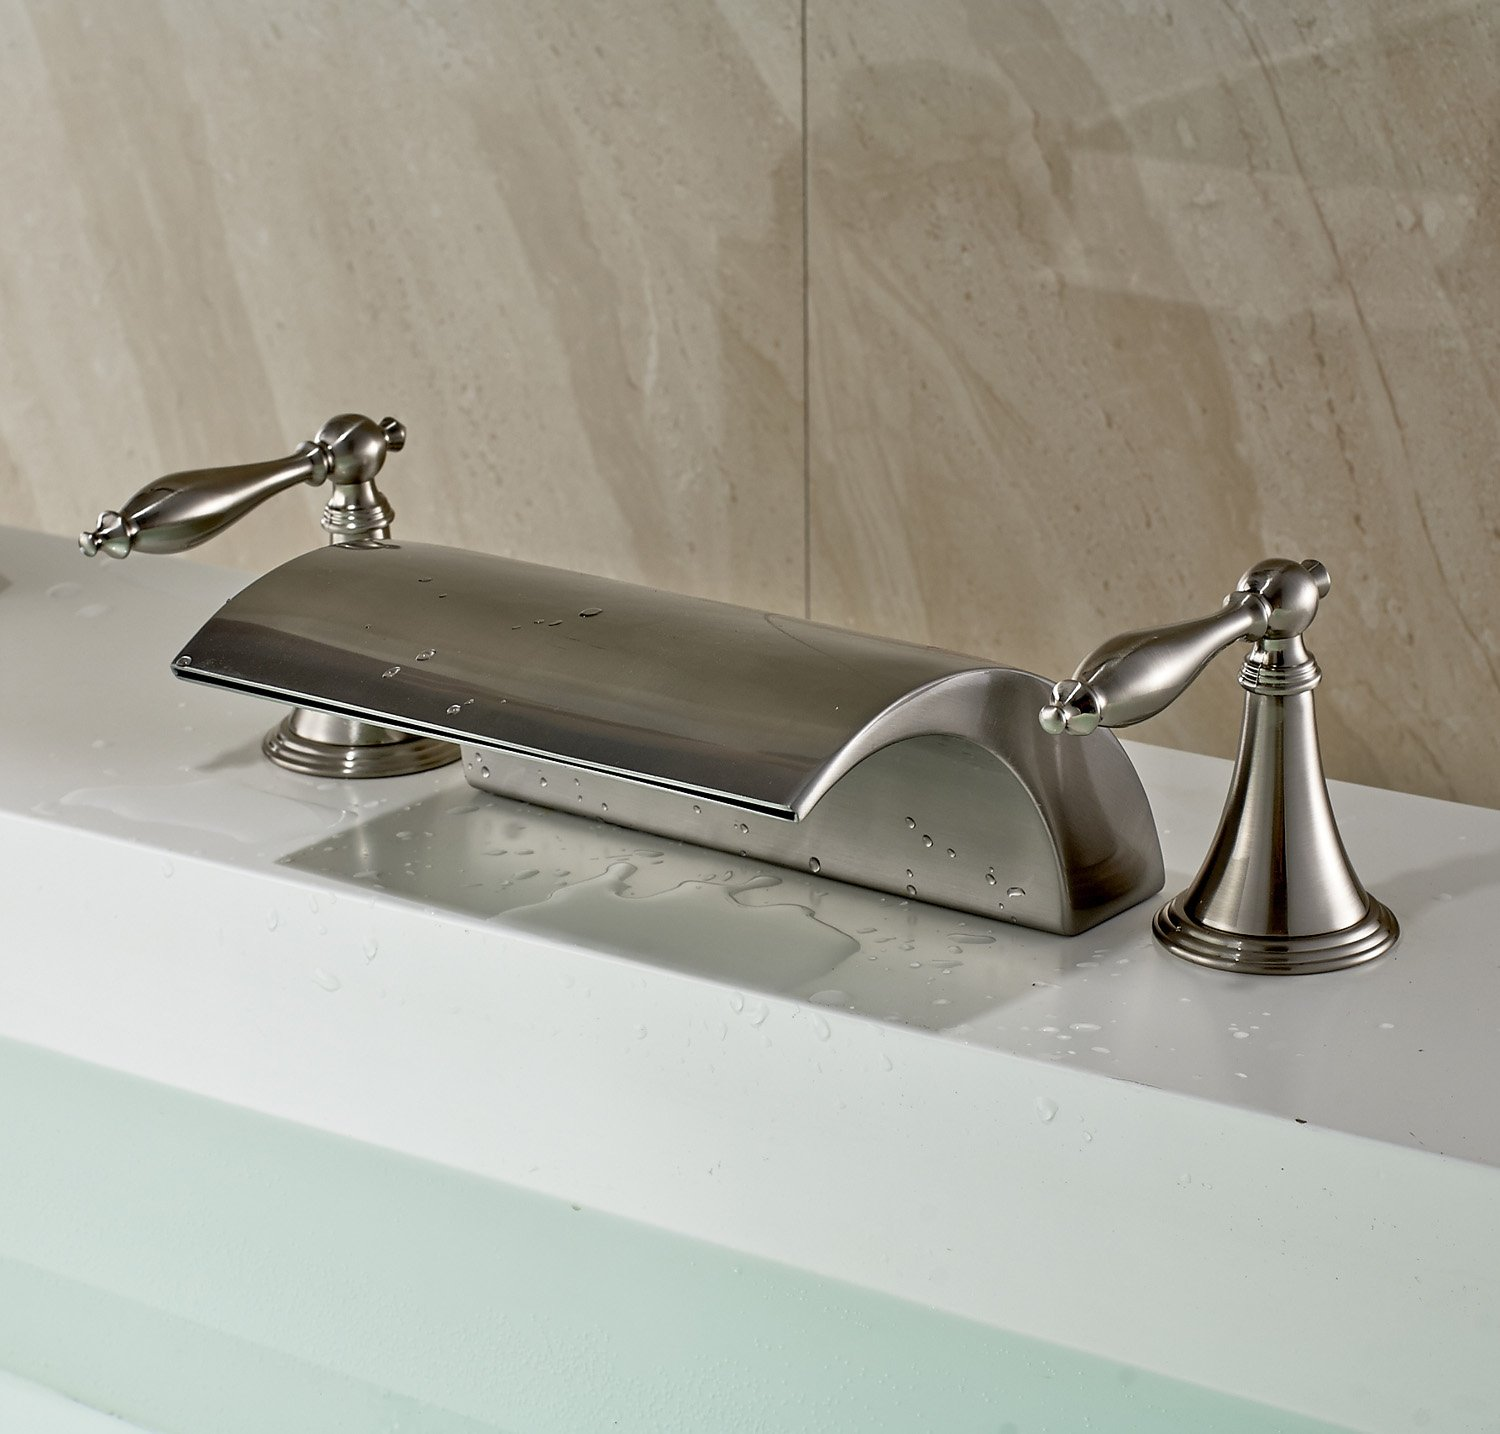 Rozin Deck Mounted 3 Holes Waterfall Spout Tub Filler Faucet Double ...